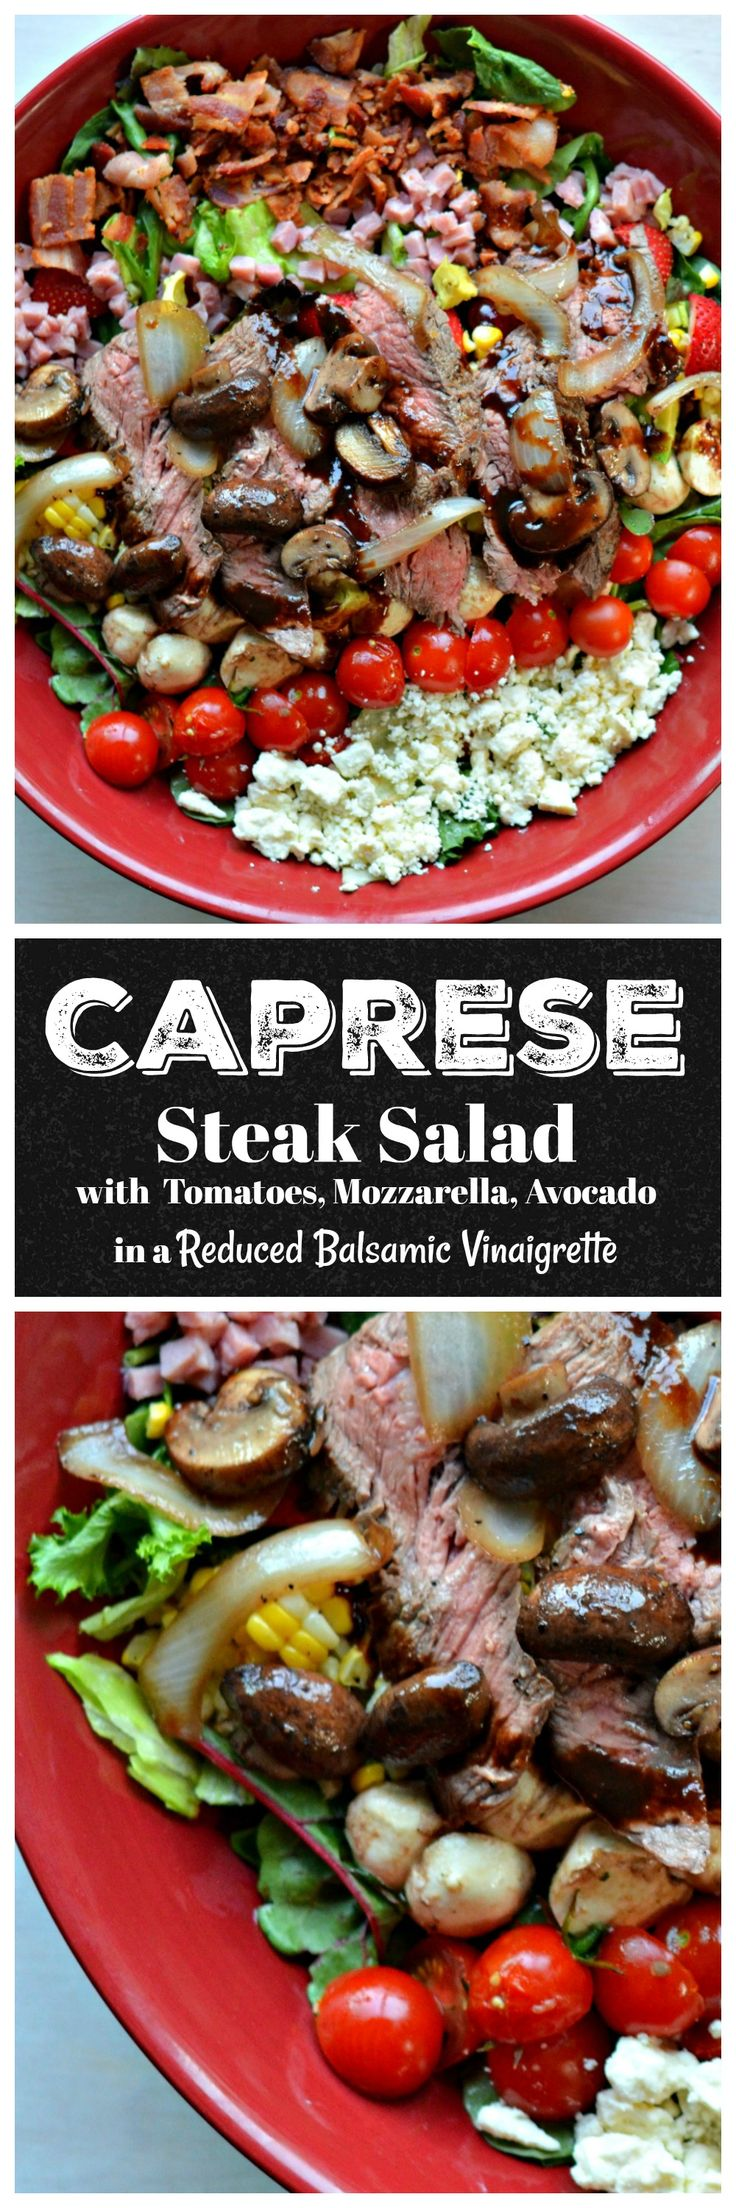 Grilled thinly sliced steak, fresh mozz, tomatoes, basil, onions and mushrooms, bacon, feta cheese with this DELICIOUS reduced balsamic vinaigrette dressing! #happilyunprocessed #cleaneating #steak #capresesalad #balsamic